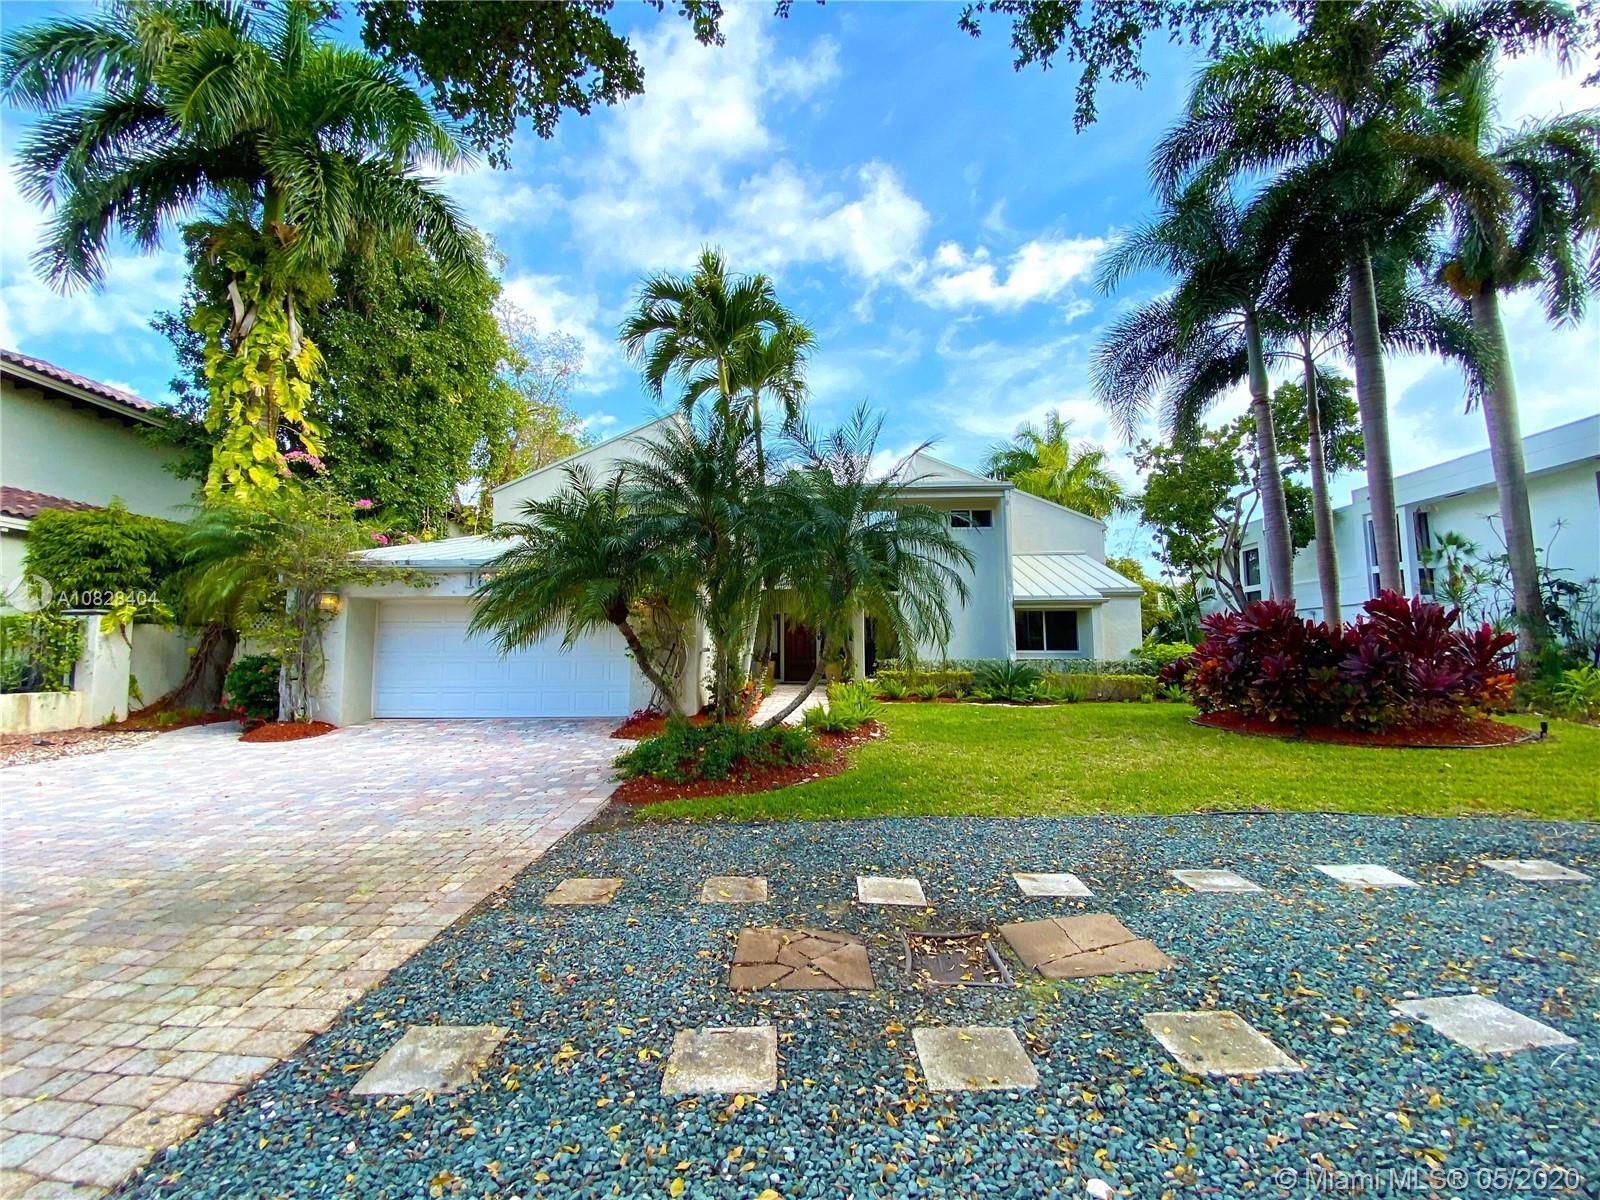 STUNNING WATERFRONT HOME ON ONE OF THE BEST STREETS IN RIO VISTA!! CIRCULAR DRIVEWAY AND DOUBLE CAR GARAGE FOR PLENTY OF ENTERTAINING, A SPACIOUS POOL & DECK WITH 85 FT OF DOCK FOR YOUR BAHAMIAN GETAWAYS. EXOTIC WOOD FLOORS THROUGHOUT, UNIQUE STEP OUT BALCONIES ON BOTH UPPER BEDROOMS AND A STONE FIREPLACE FOR COZY CUDDLING AFTER KAYAKING ALL DAY. THIS HOME COULD GENERATE 2-3 TIMES MARKET RENT  WITH SHORT TERM RENTAL PLATFORMS OR JUST ENJOY IT AND LIVE LIFE TO THE FULLEST. CALL LIST AGENT FOR EXCLUSIVE SHOWINGS NOW....